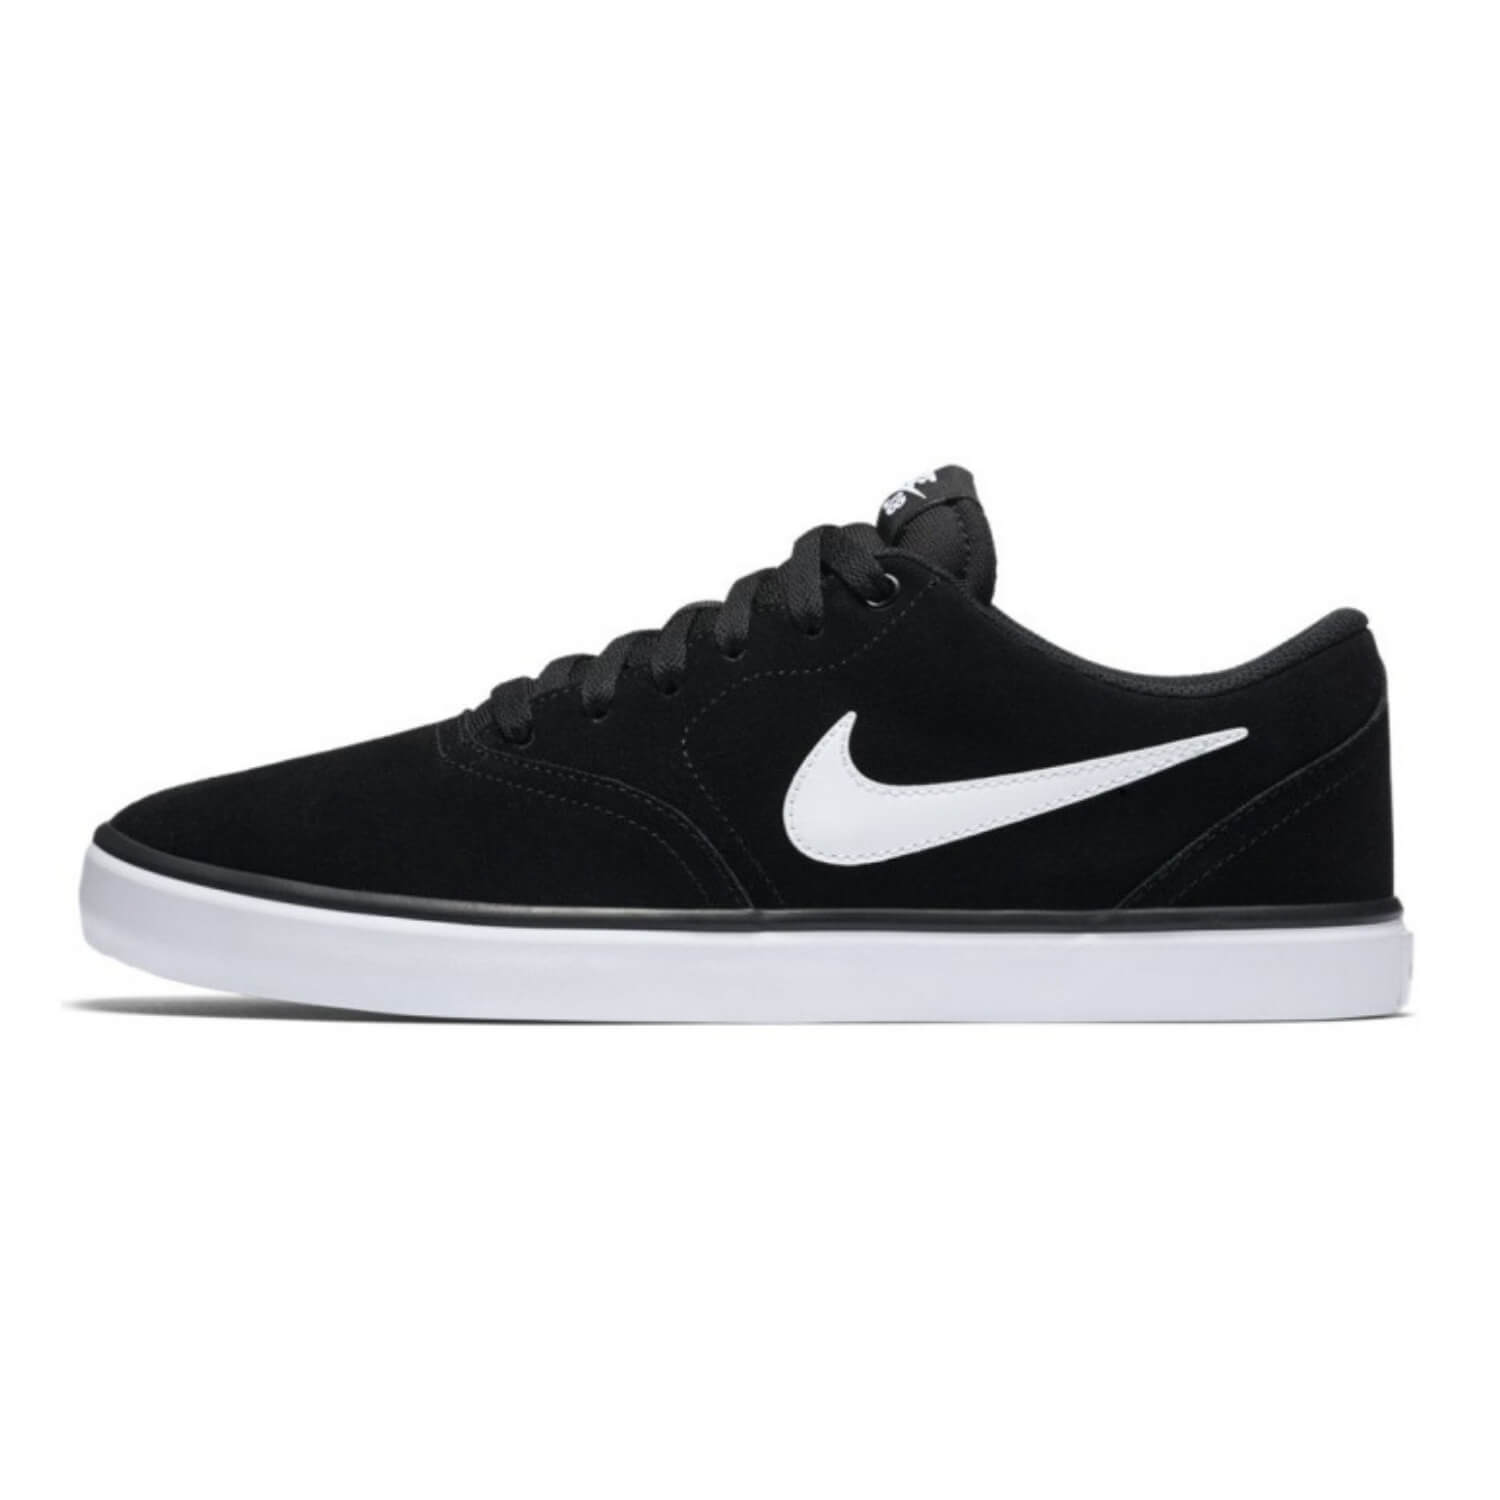 NIKE SB Check Solar Black Čierna uk 10